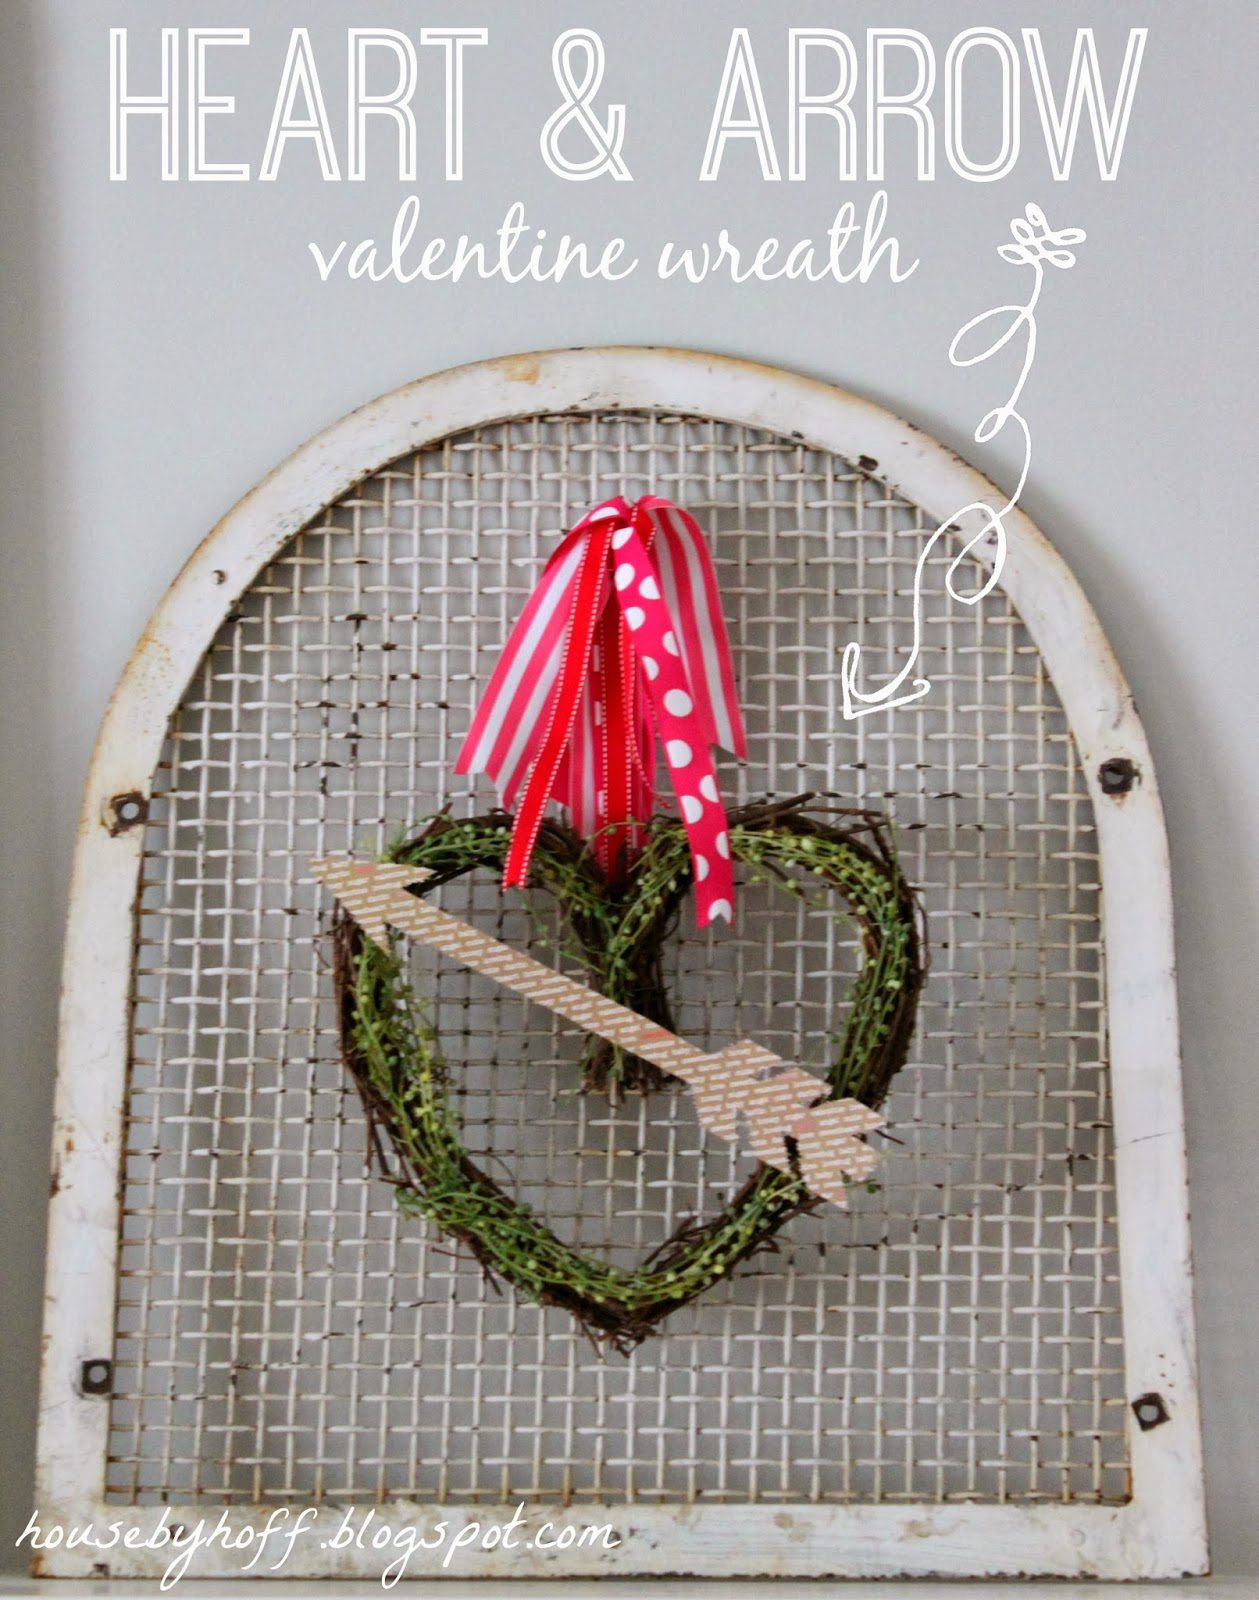 Heart & arrow Valentine wreath graphic.